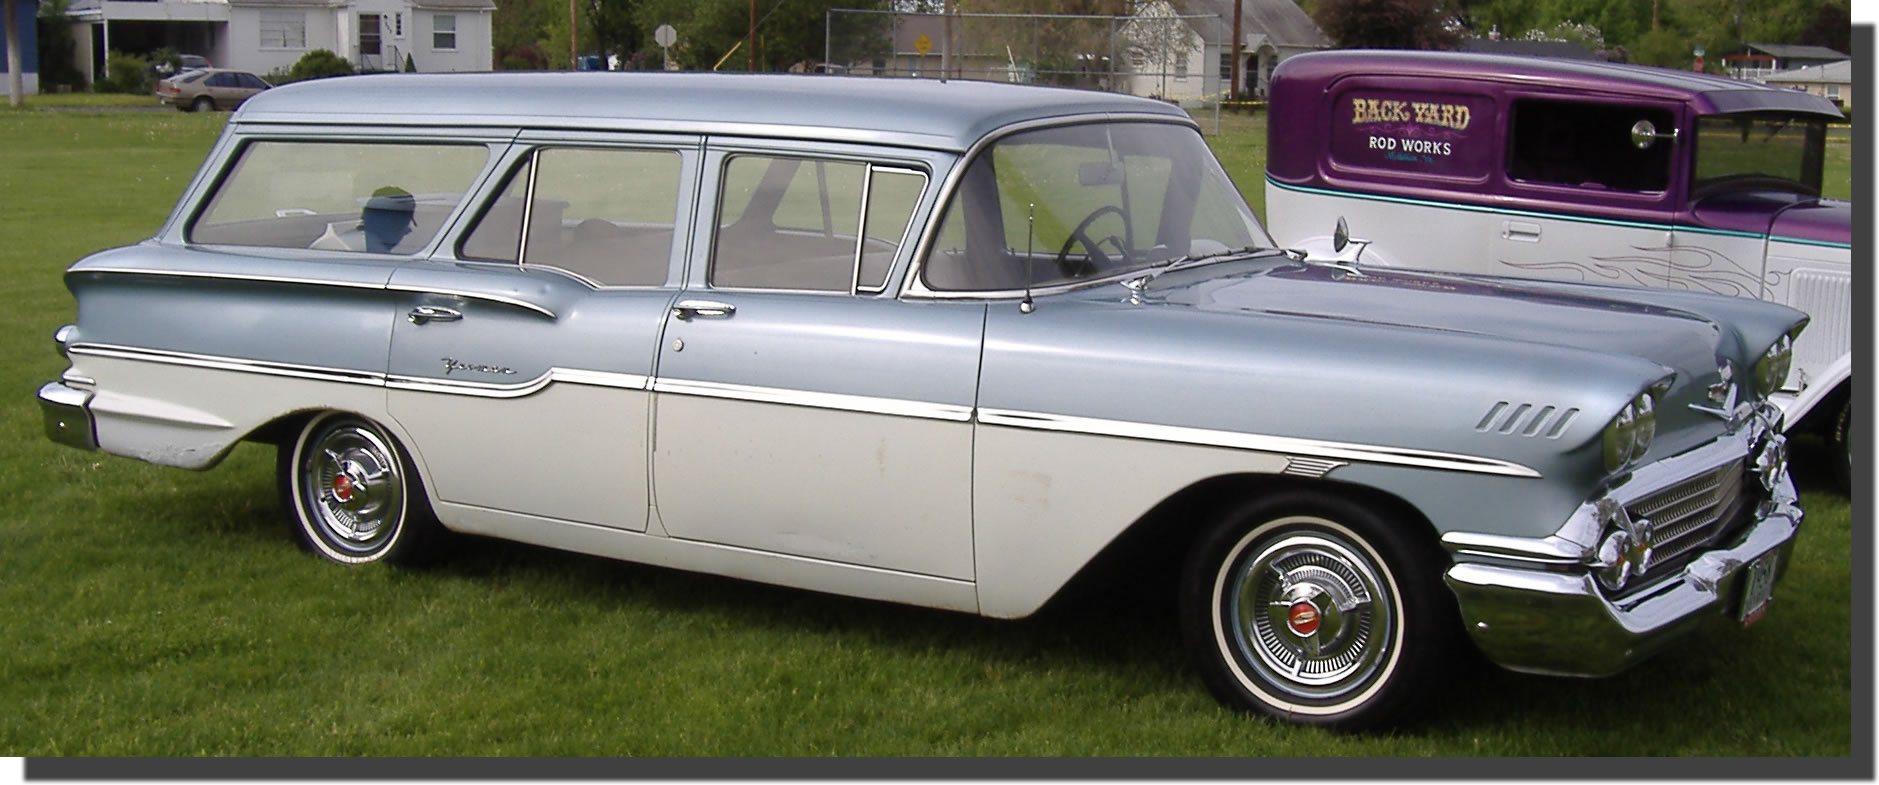 In 1958, Chevy introduced 5